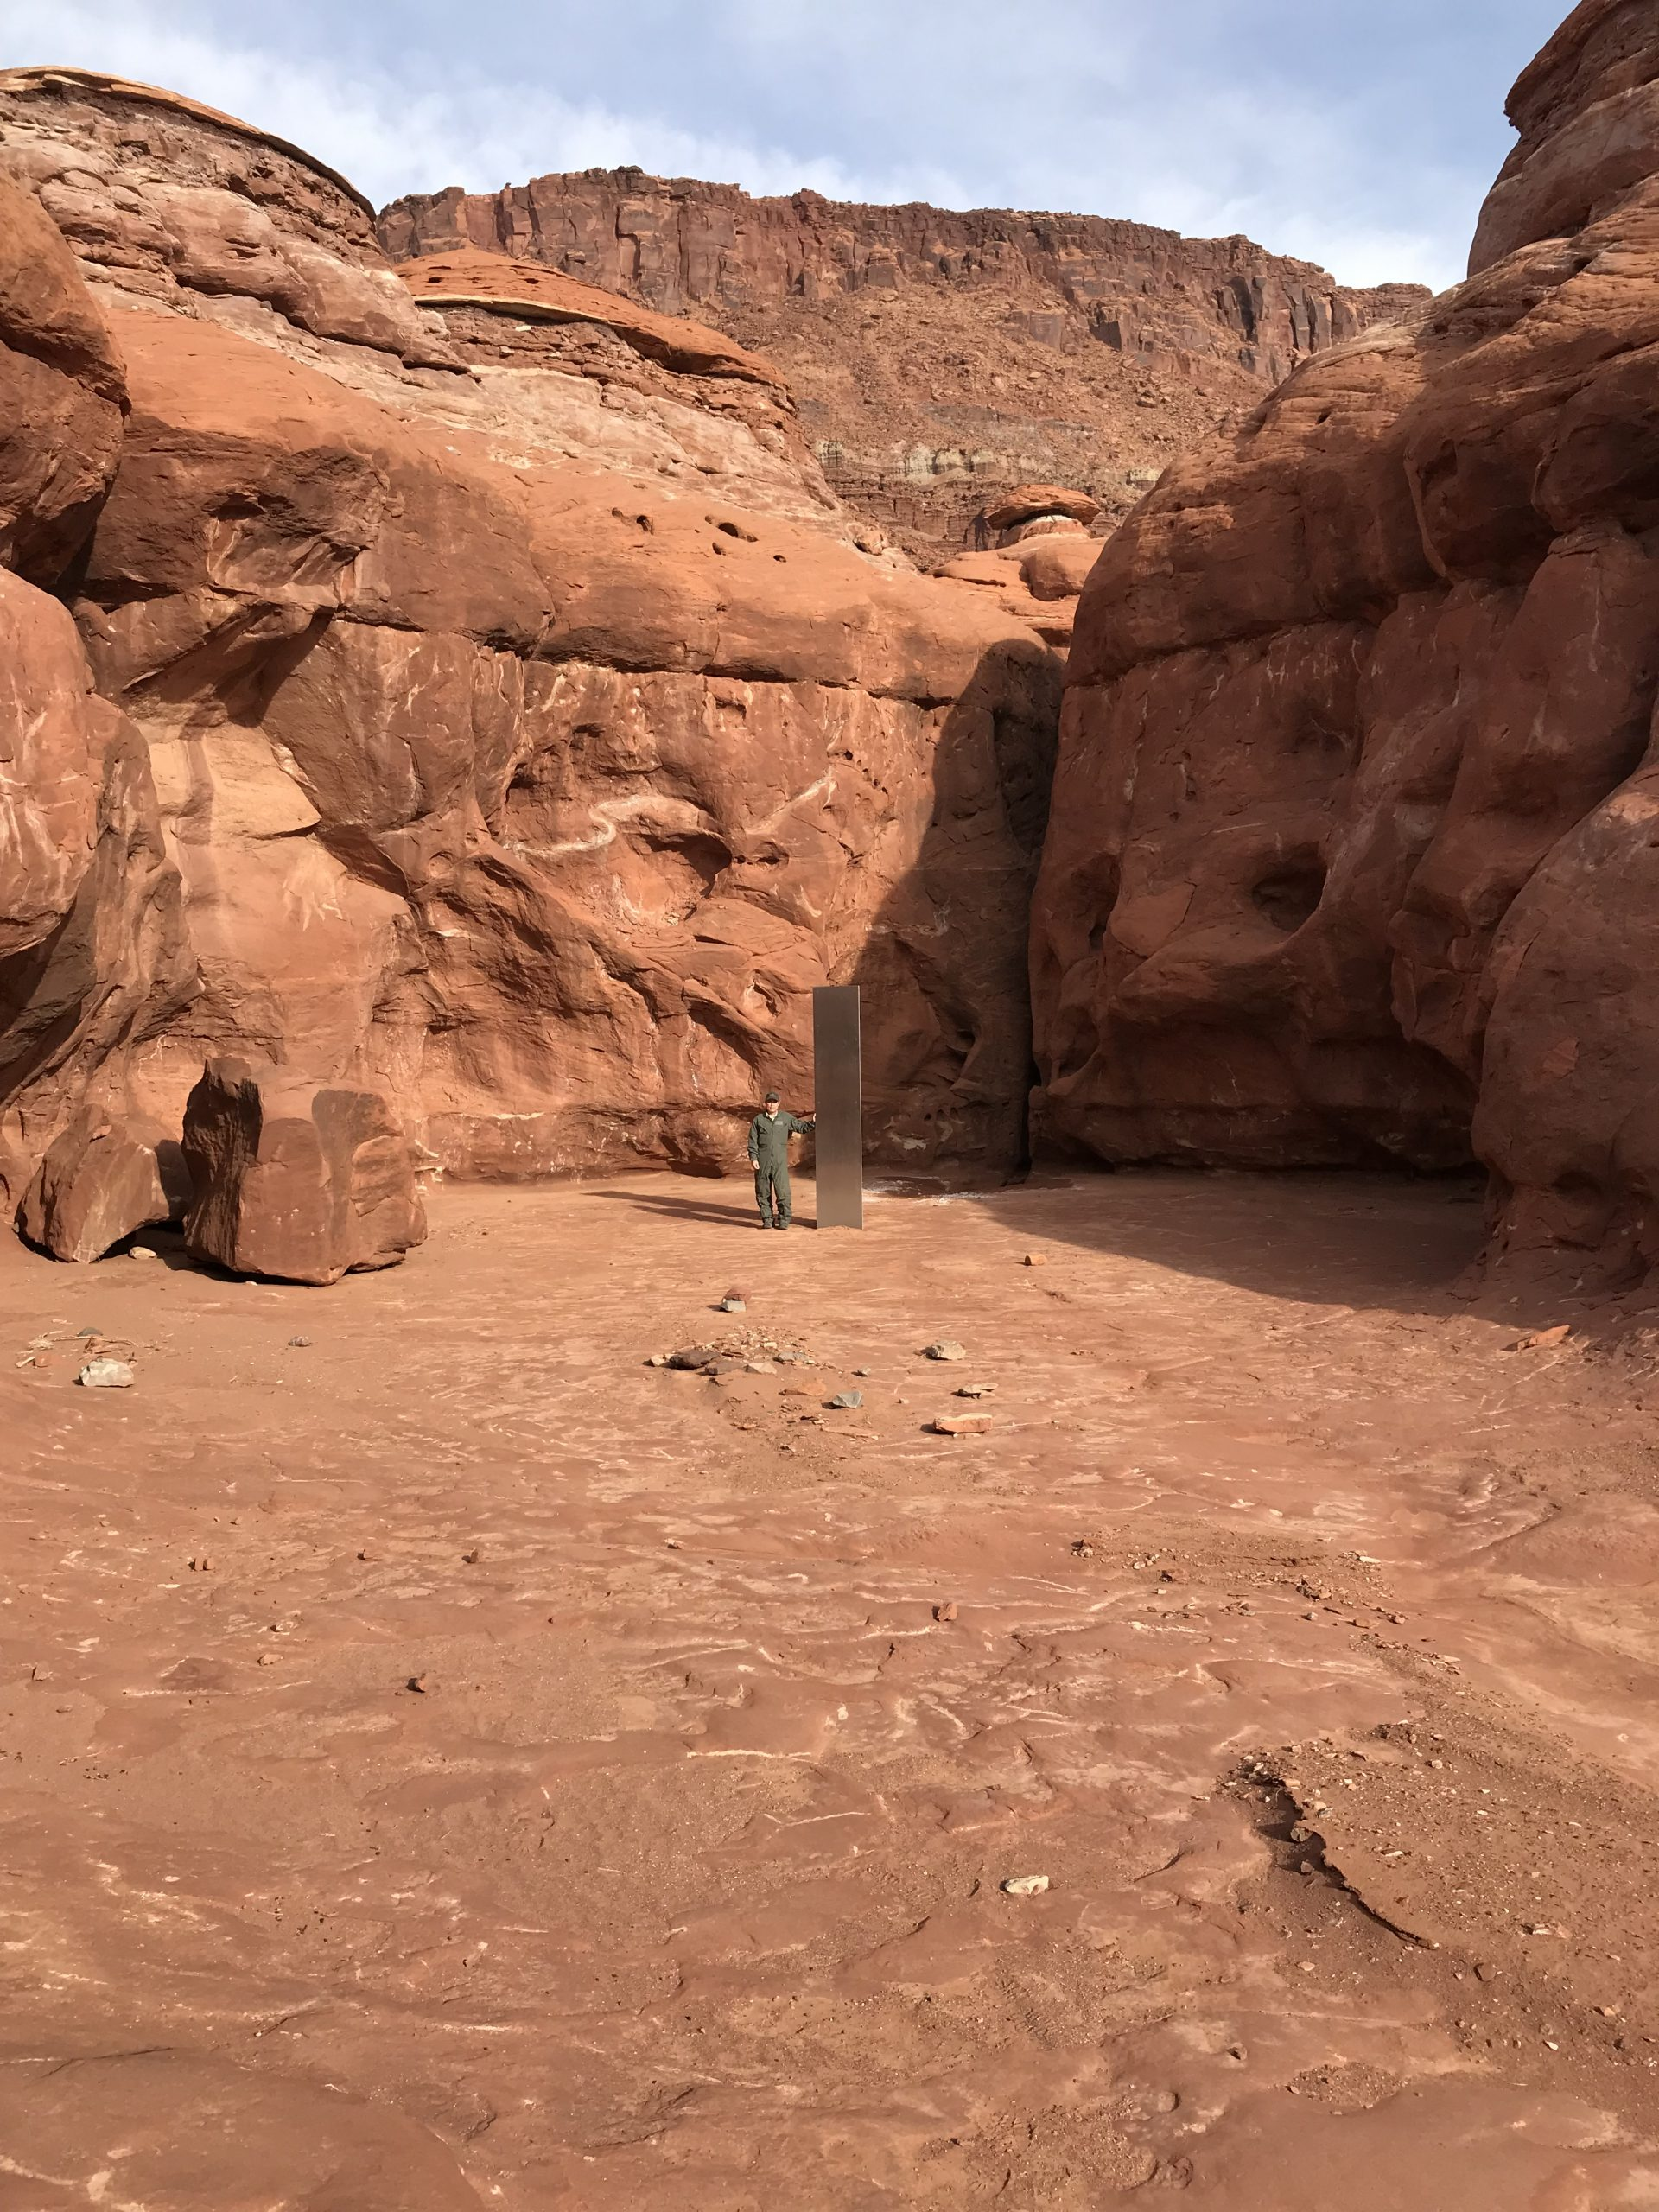 A crew member from the DPS Aero Bureau mission stands next to the metal monolith implanted in the ground in red rock.